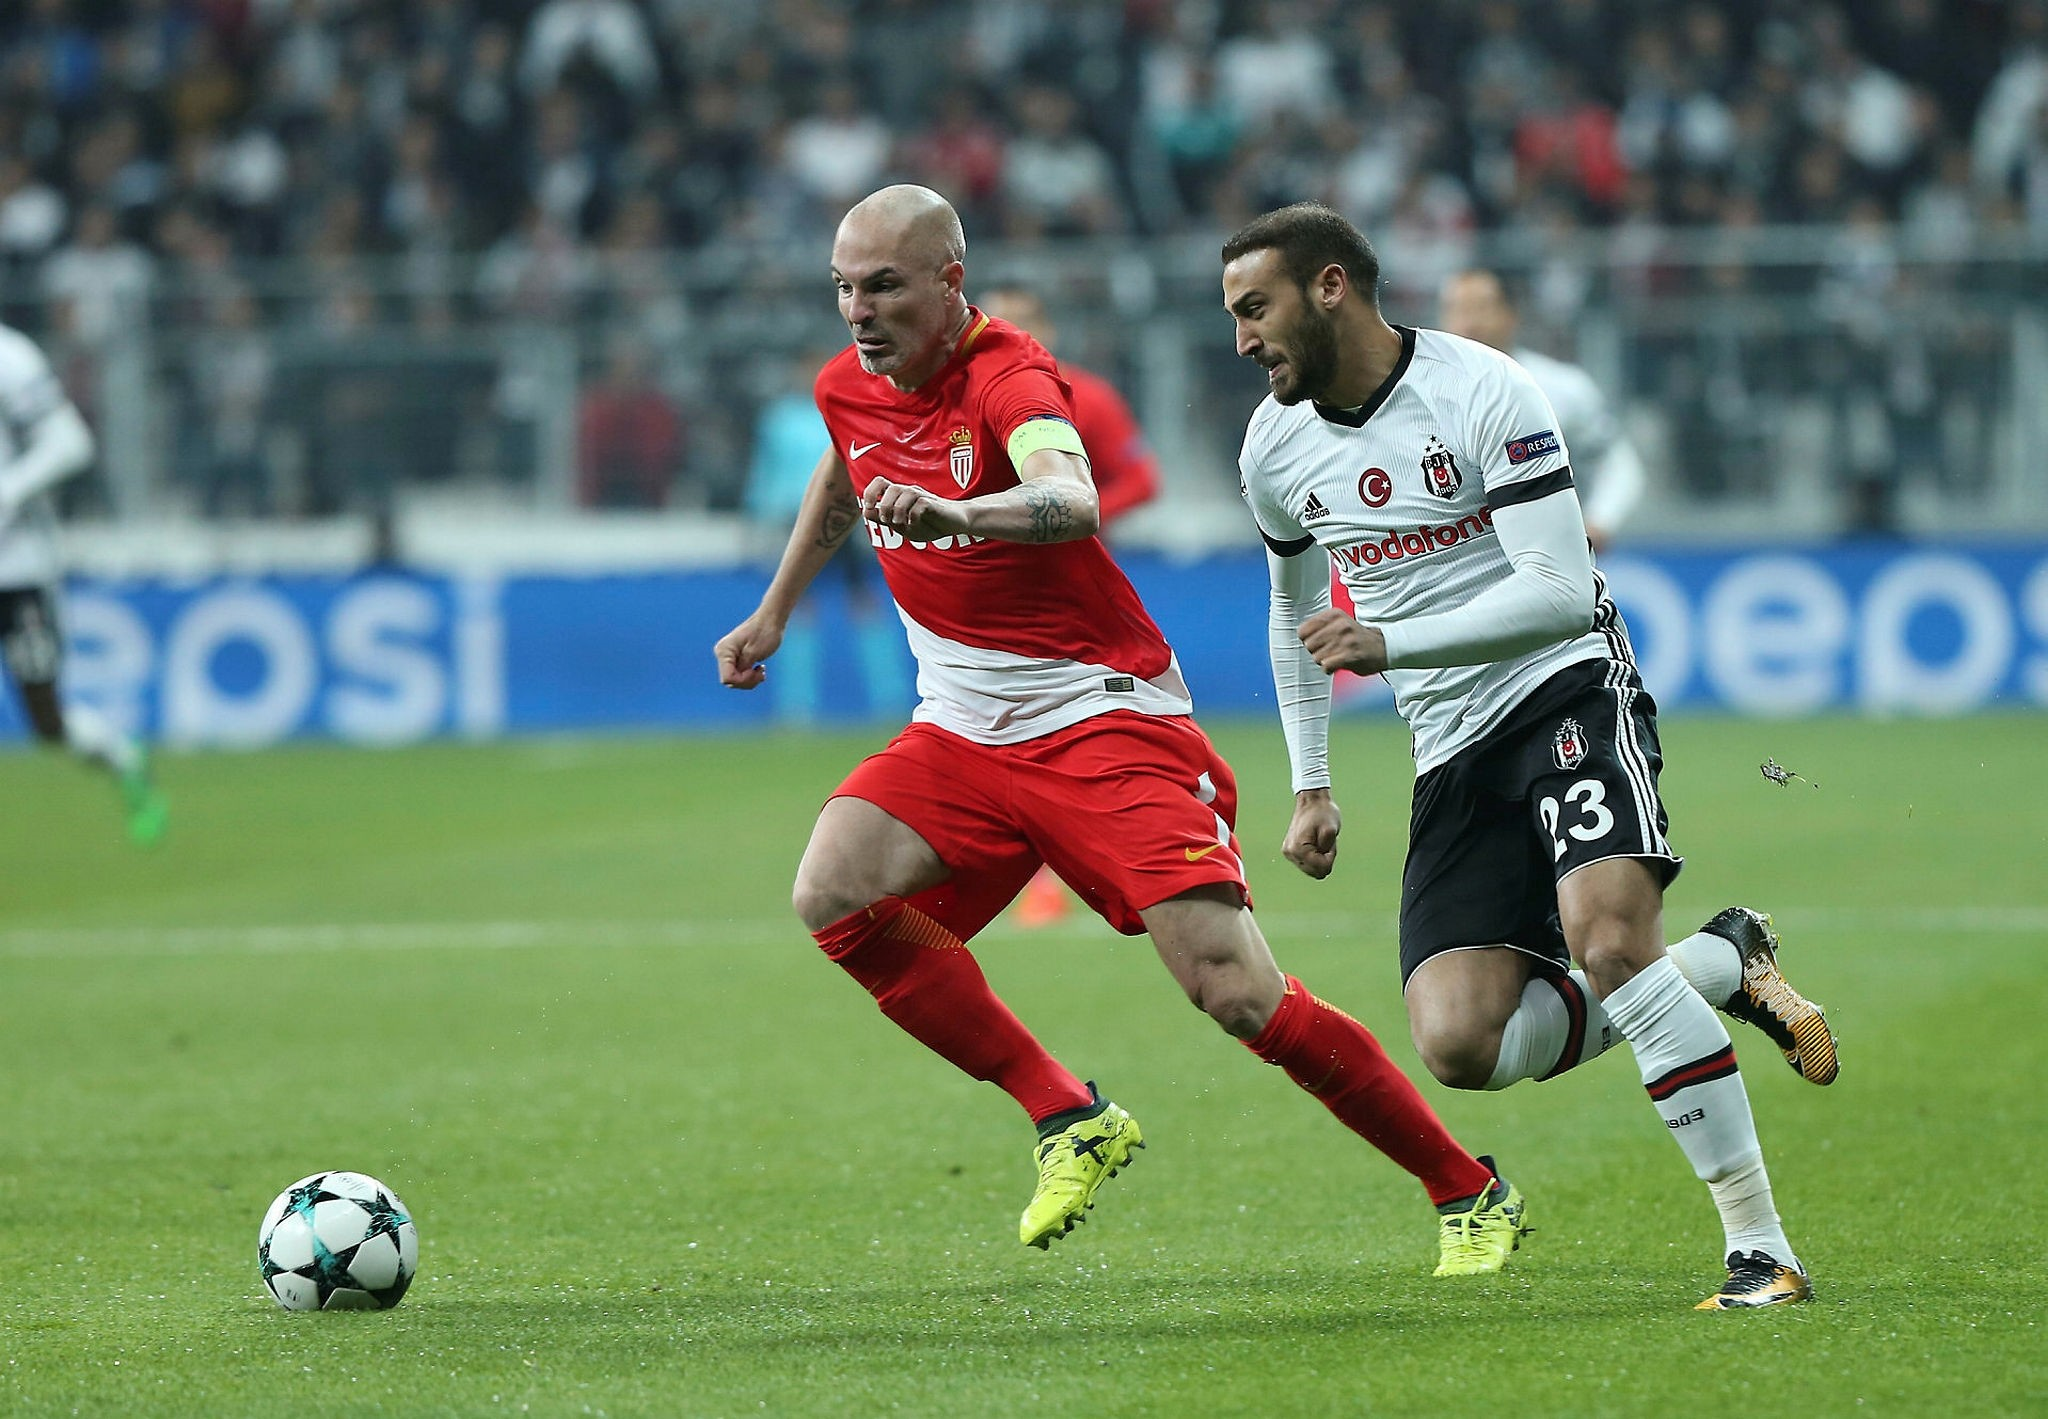 Beu015fiktau015f's Cenk Tosun (R) in action (AA Photo)